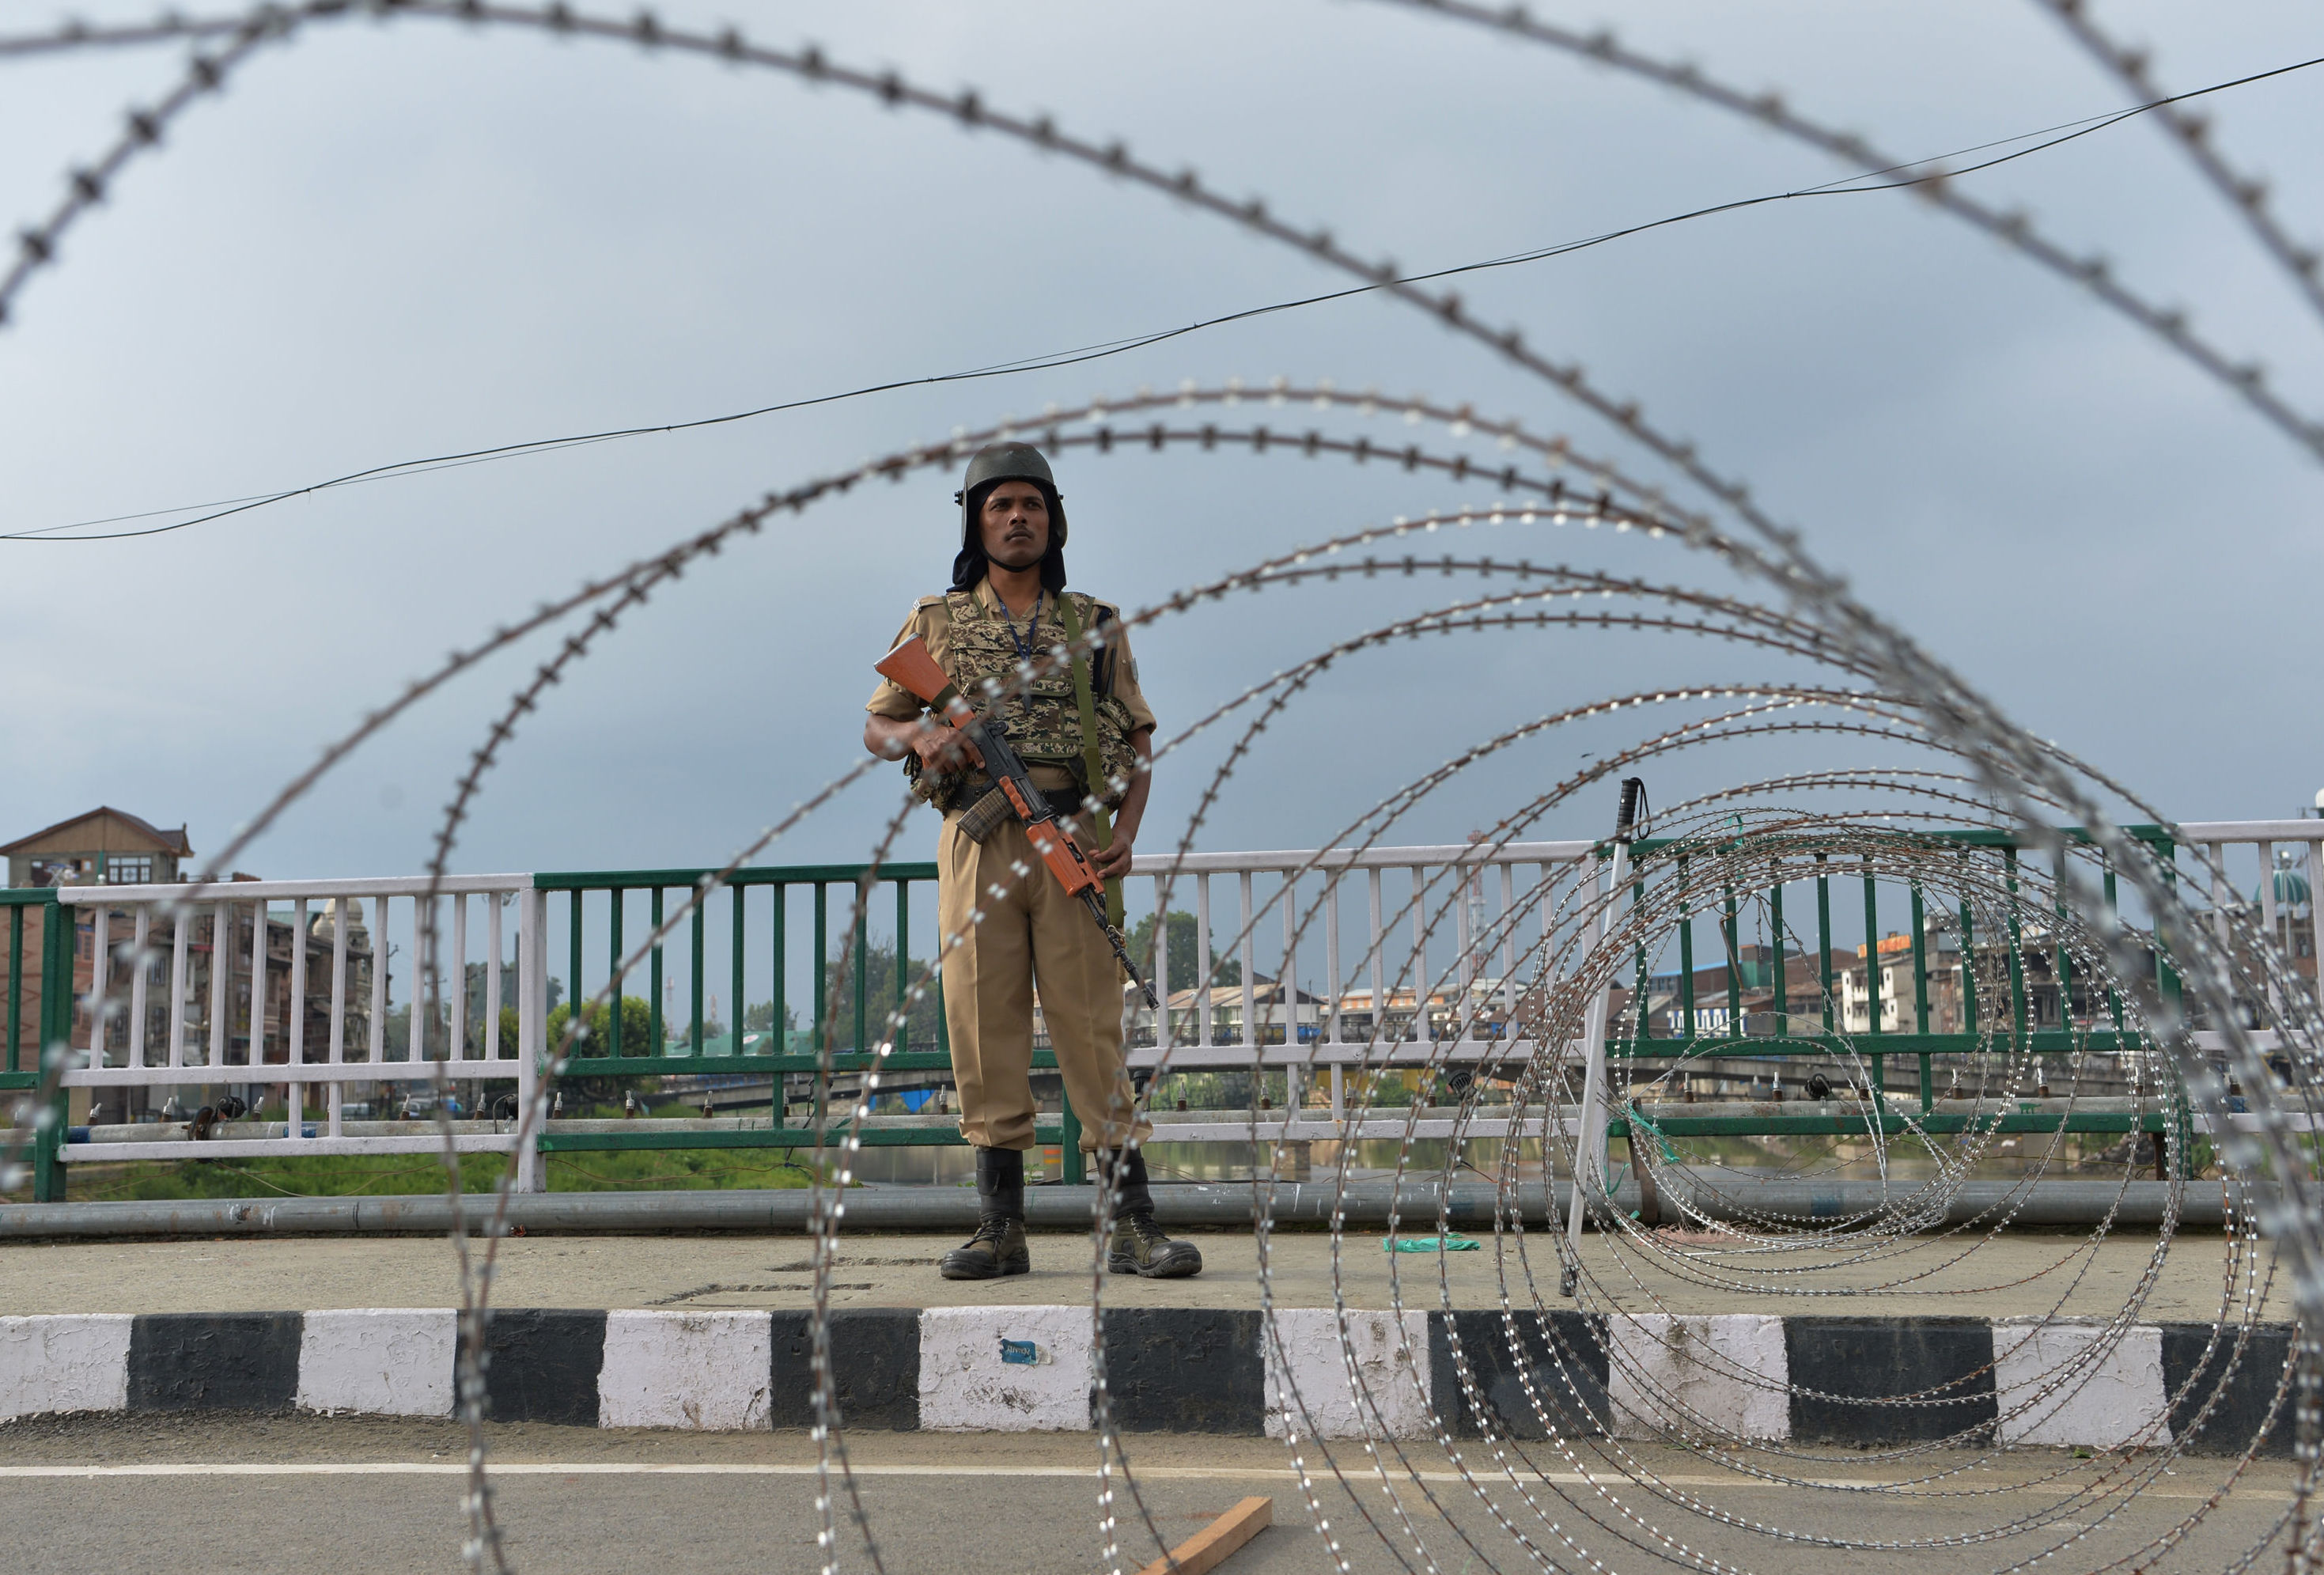 A security personnel stands guard on a street during a lockdown in Srinagar on August 11, 2019, after the Indian government stripped Jammu and Kashmir of its autonomy